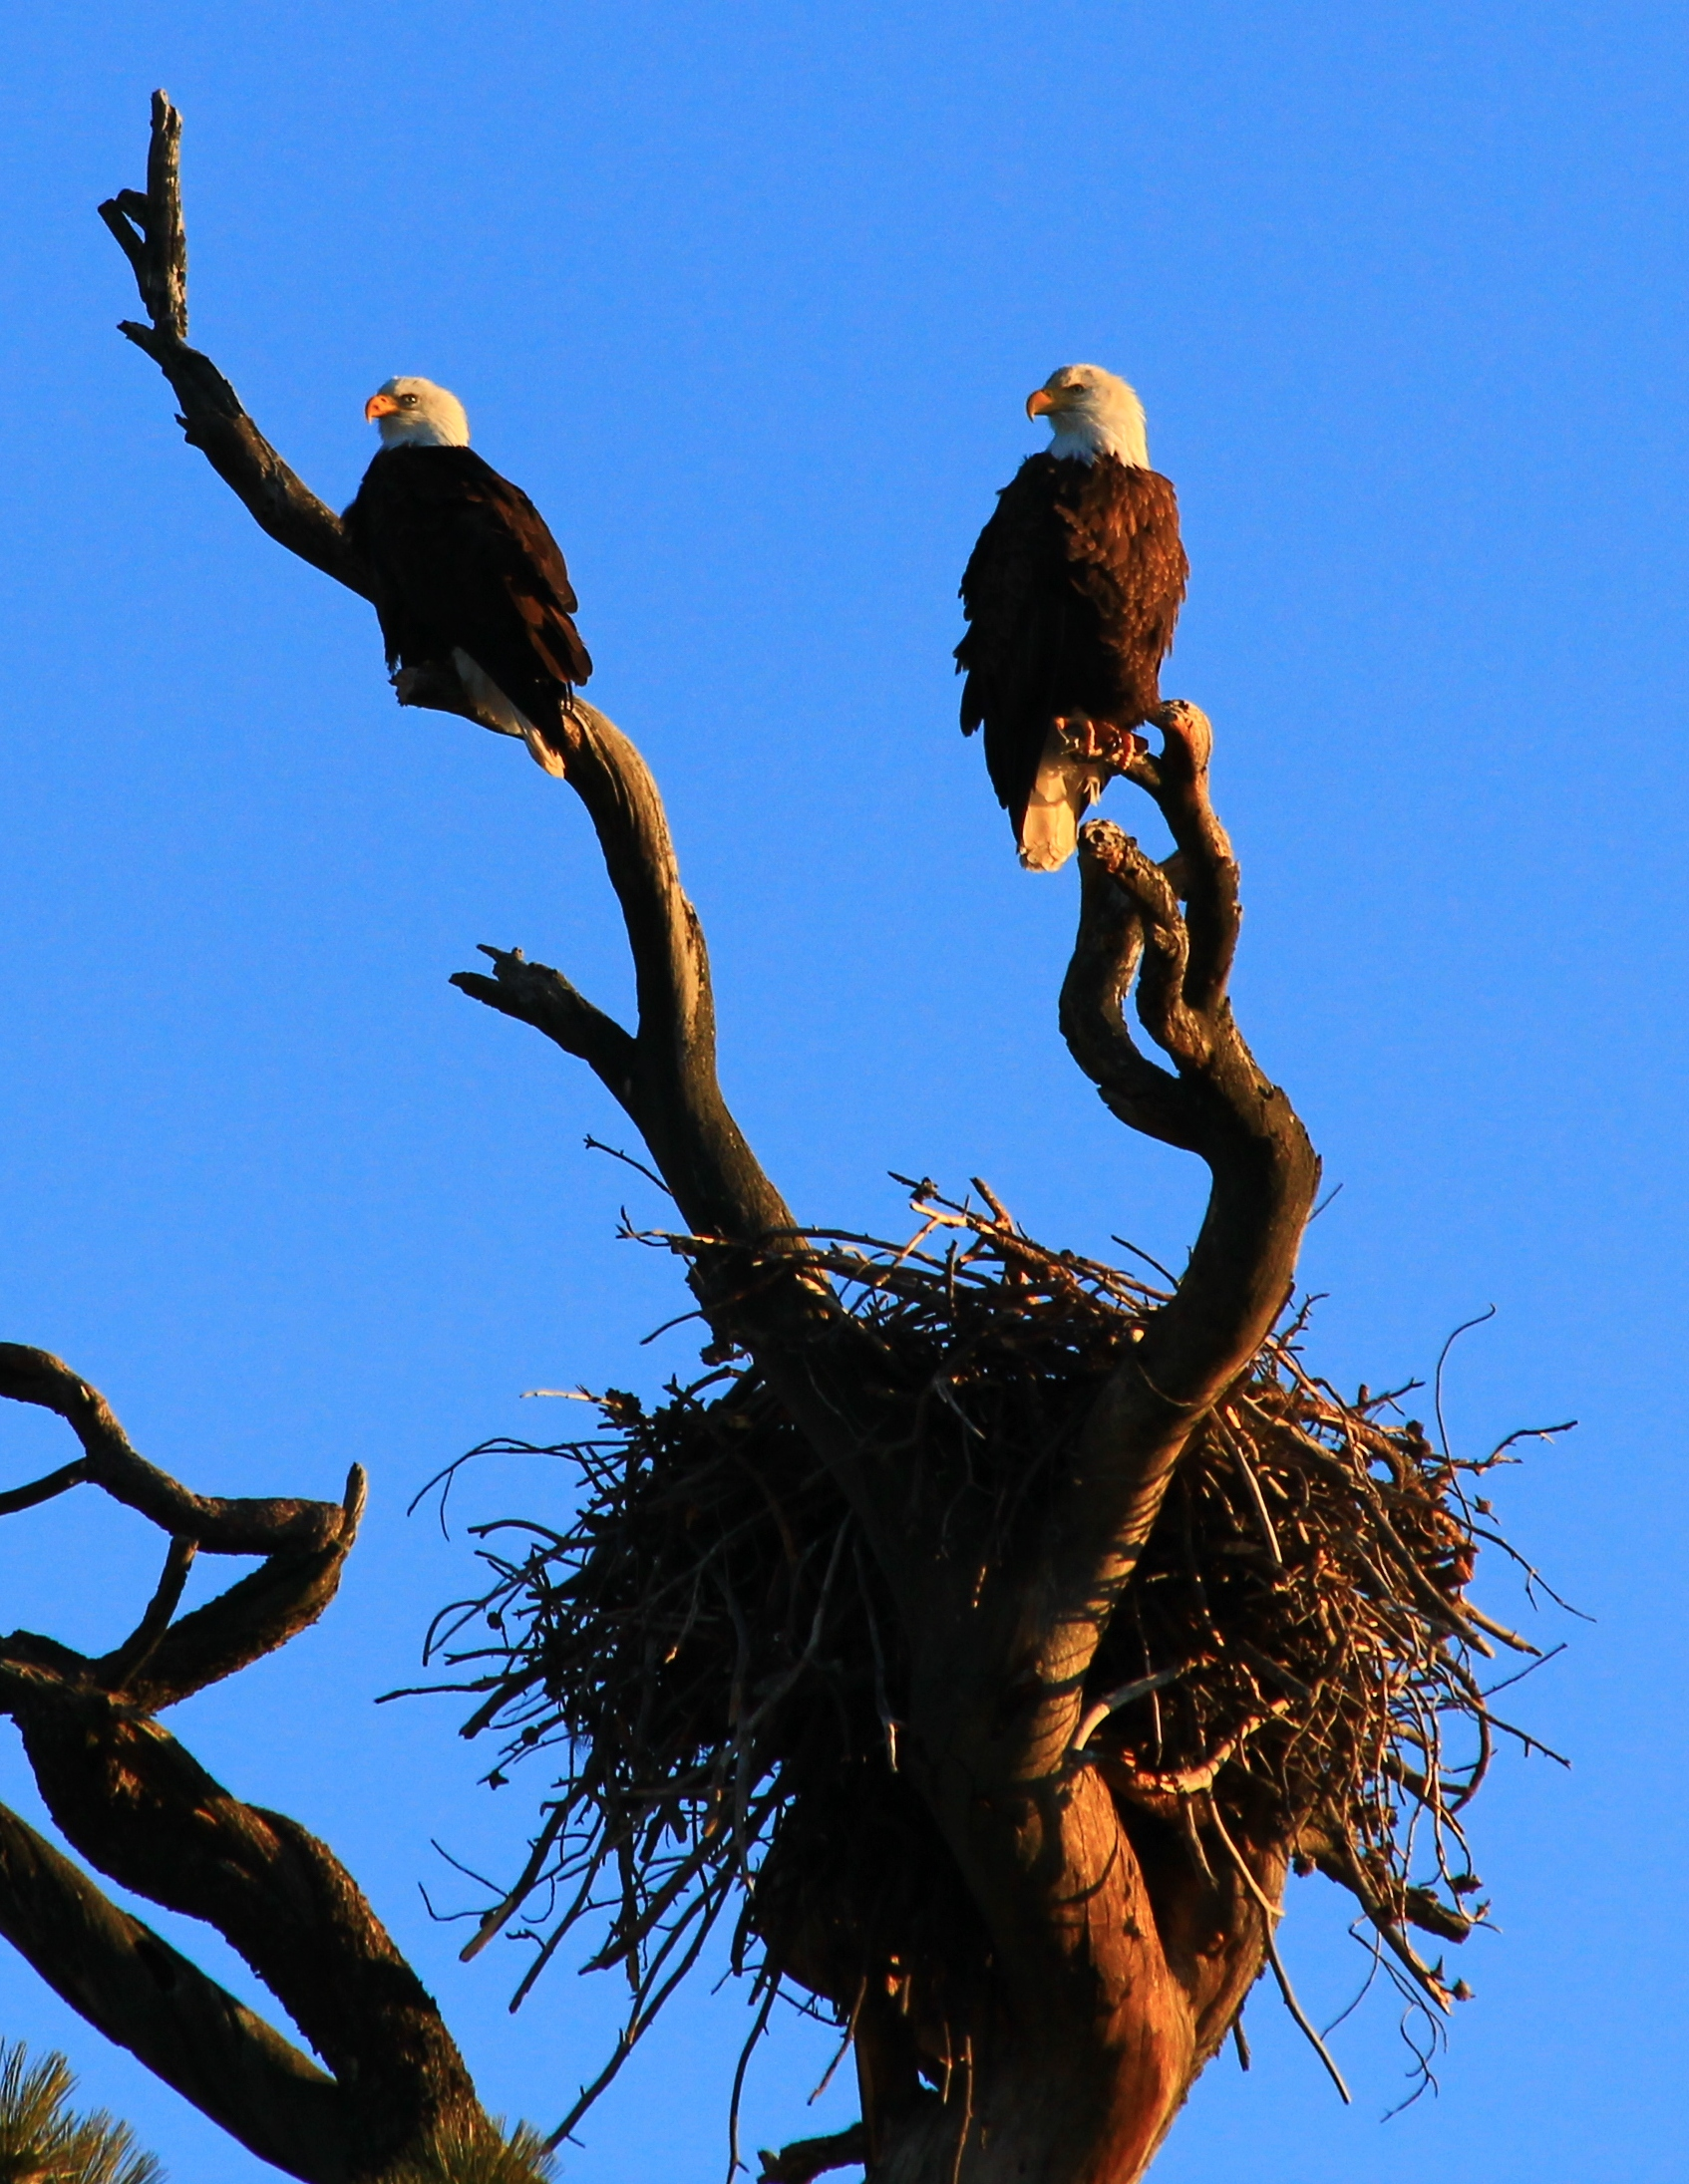 Are bald eagle nests competition for This Old House? - Indeed, they are. Bald eagles build enormous nests high in the treetops. The male and female build their nest together, and this quality time helps them cement their lifelong bond. Their cozy nurseries consist of a framework of sticks lined with softer stuff such as grass and feathers. If the nest serves them well during the breeding season, they'll keep using it year after year. And, like all homeowners, they can't resist the thought of renovating and adding to their abode. Every year, they'll spruce it up with a whopping foot or two of new material.On average, bald eagle nests are 2-4 feet deep and 4-5 feet wide. But one pair of eagles near St. Petersburg, Florida, earned the Guinness World Record for largest bird's nest: 20 feet deep and 9.5 feet wide. The nest weighed over two tons.